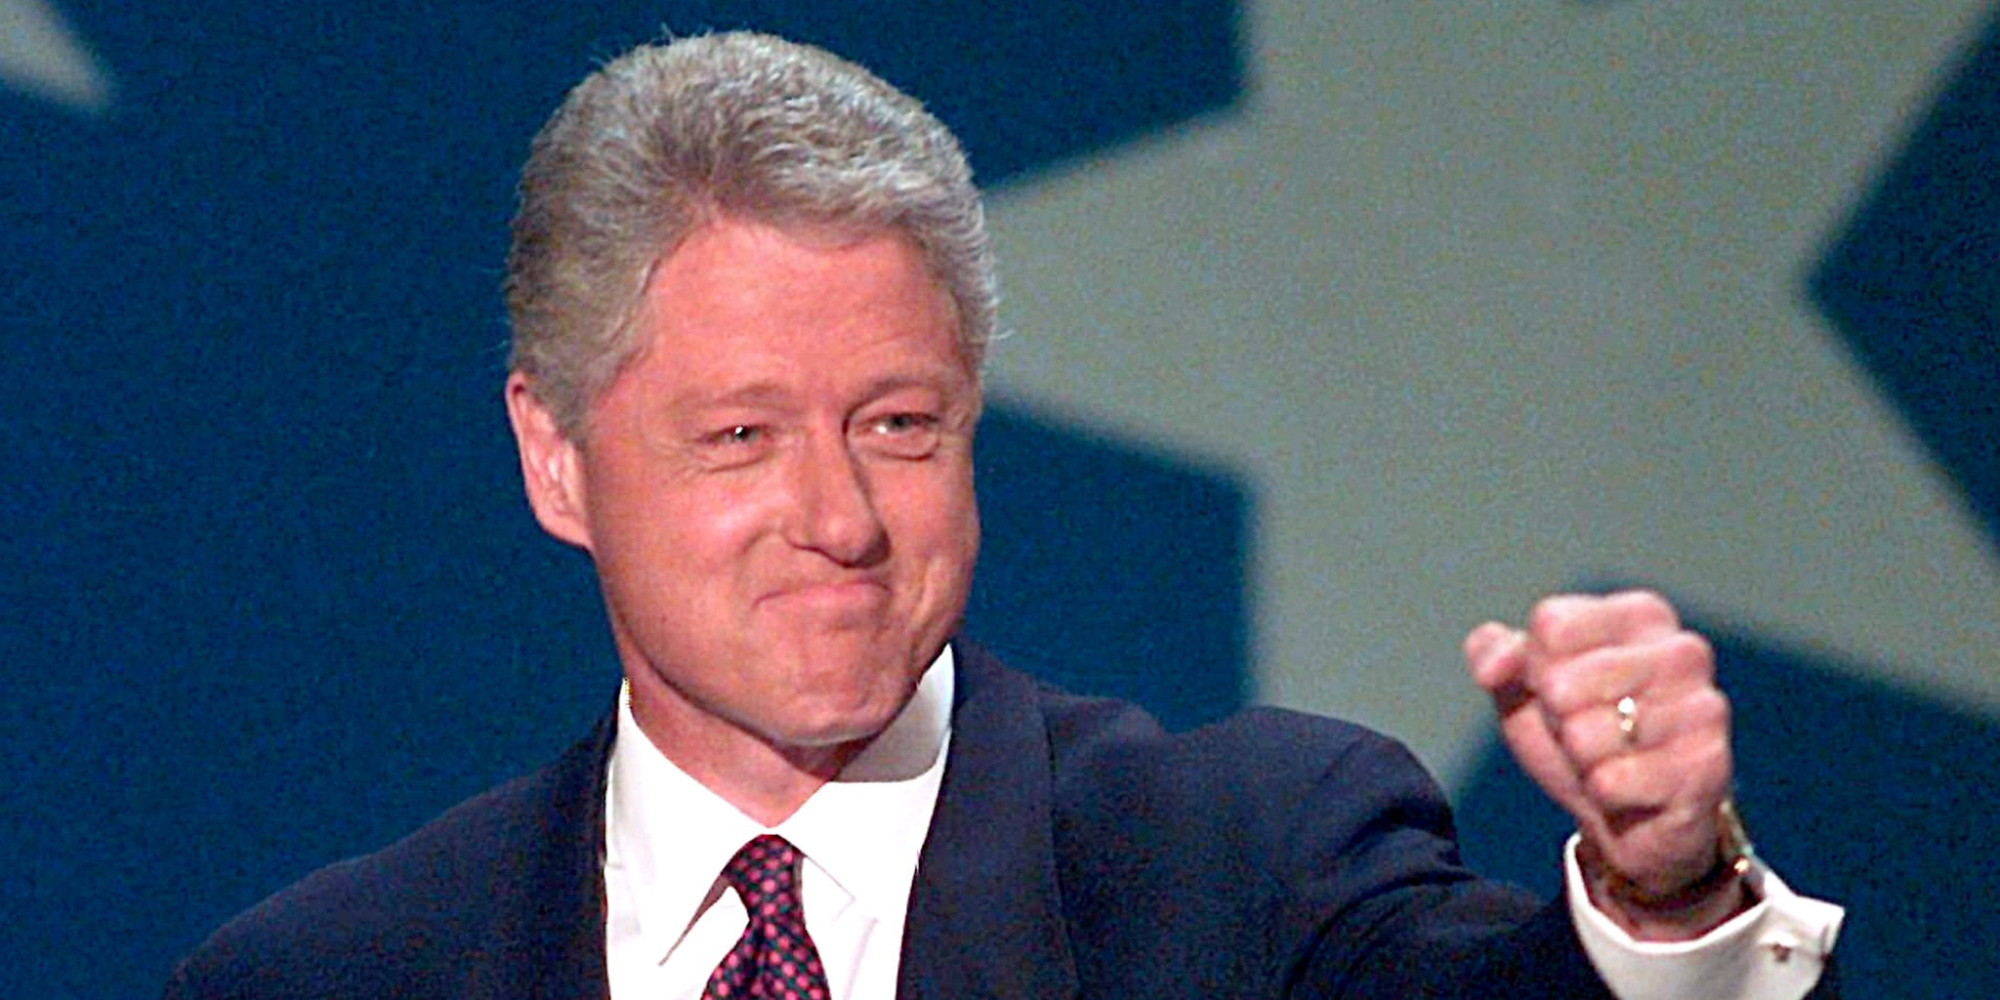 bill clinton essays Free essay: the name of my president is bill clinton, the 42nd president of the united states of america bill clinton was born on august 19, 1946, in the.